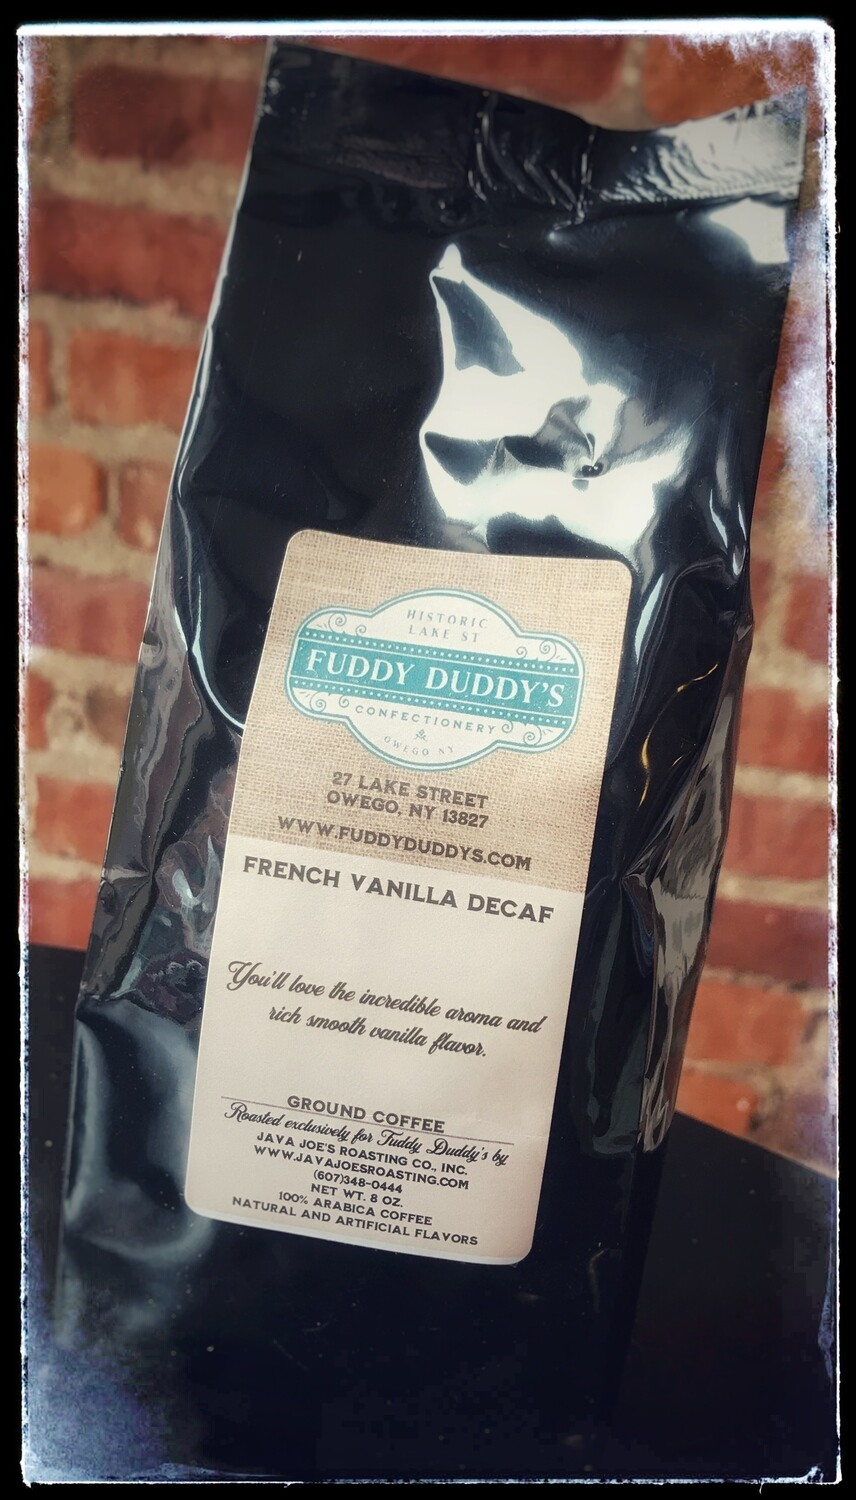 Ground Coffee - French Vanilla Decaf - 8 oz